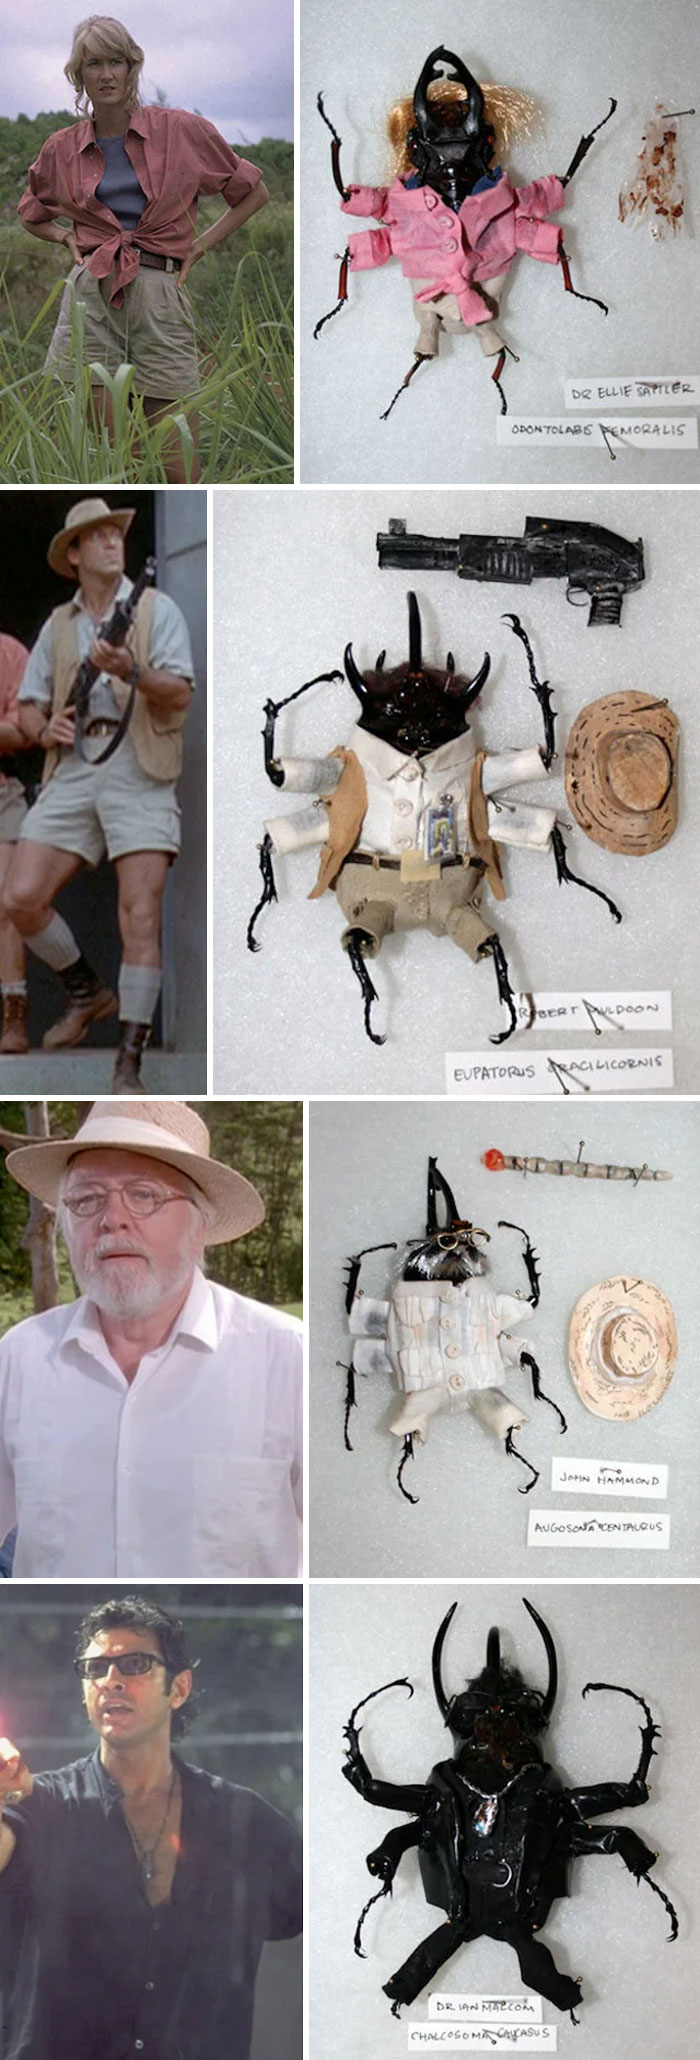 Someone Was Selling Dead Beetles Dressed Up As Jurassic Park Characters On Etsy